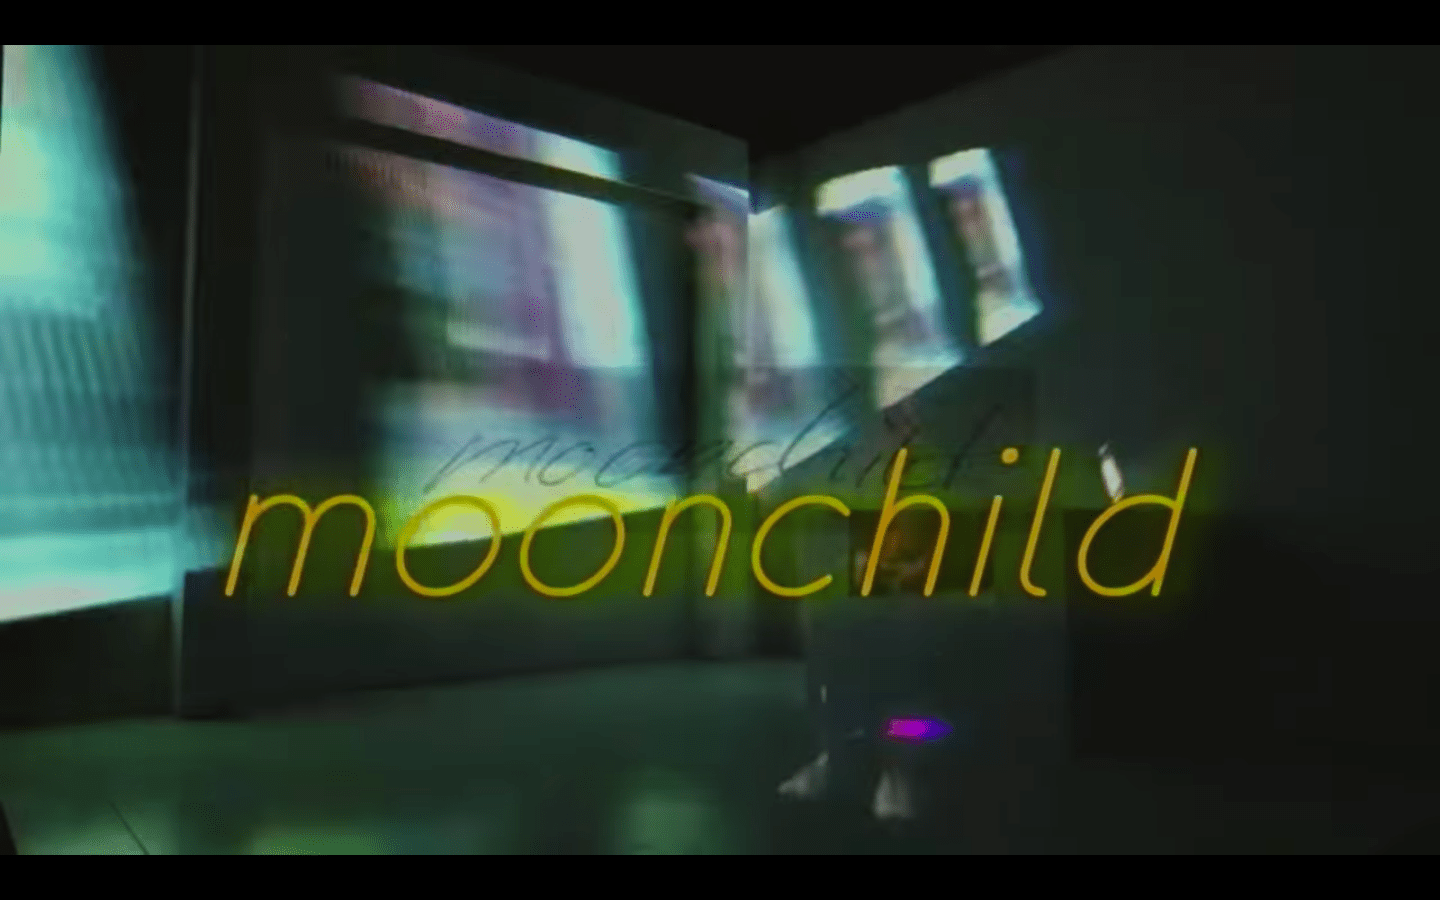 """WATCH: BTS's RM Drops Comforting Lyric Video For """"Moonchild"""""""